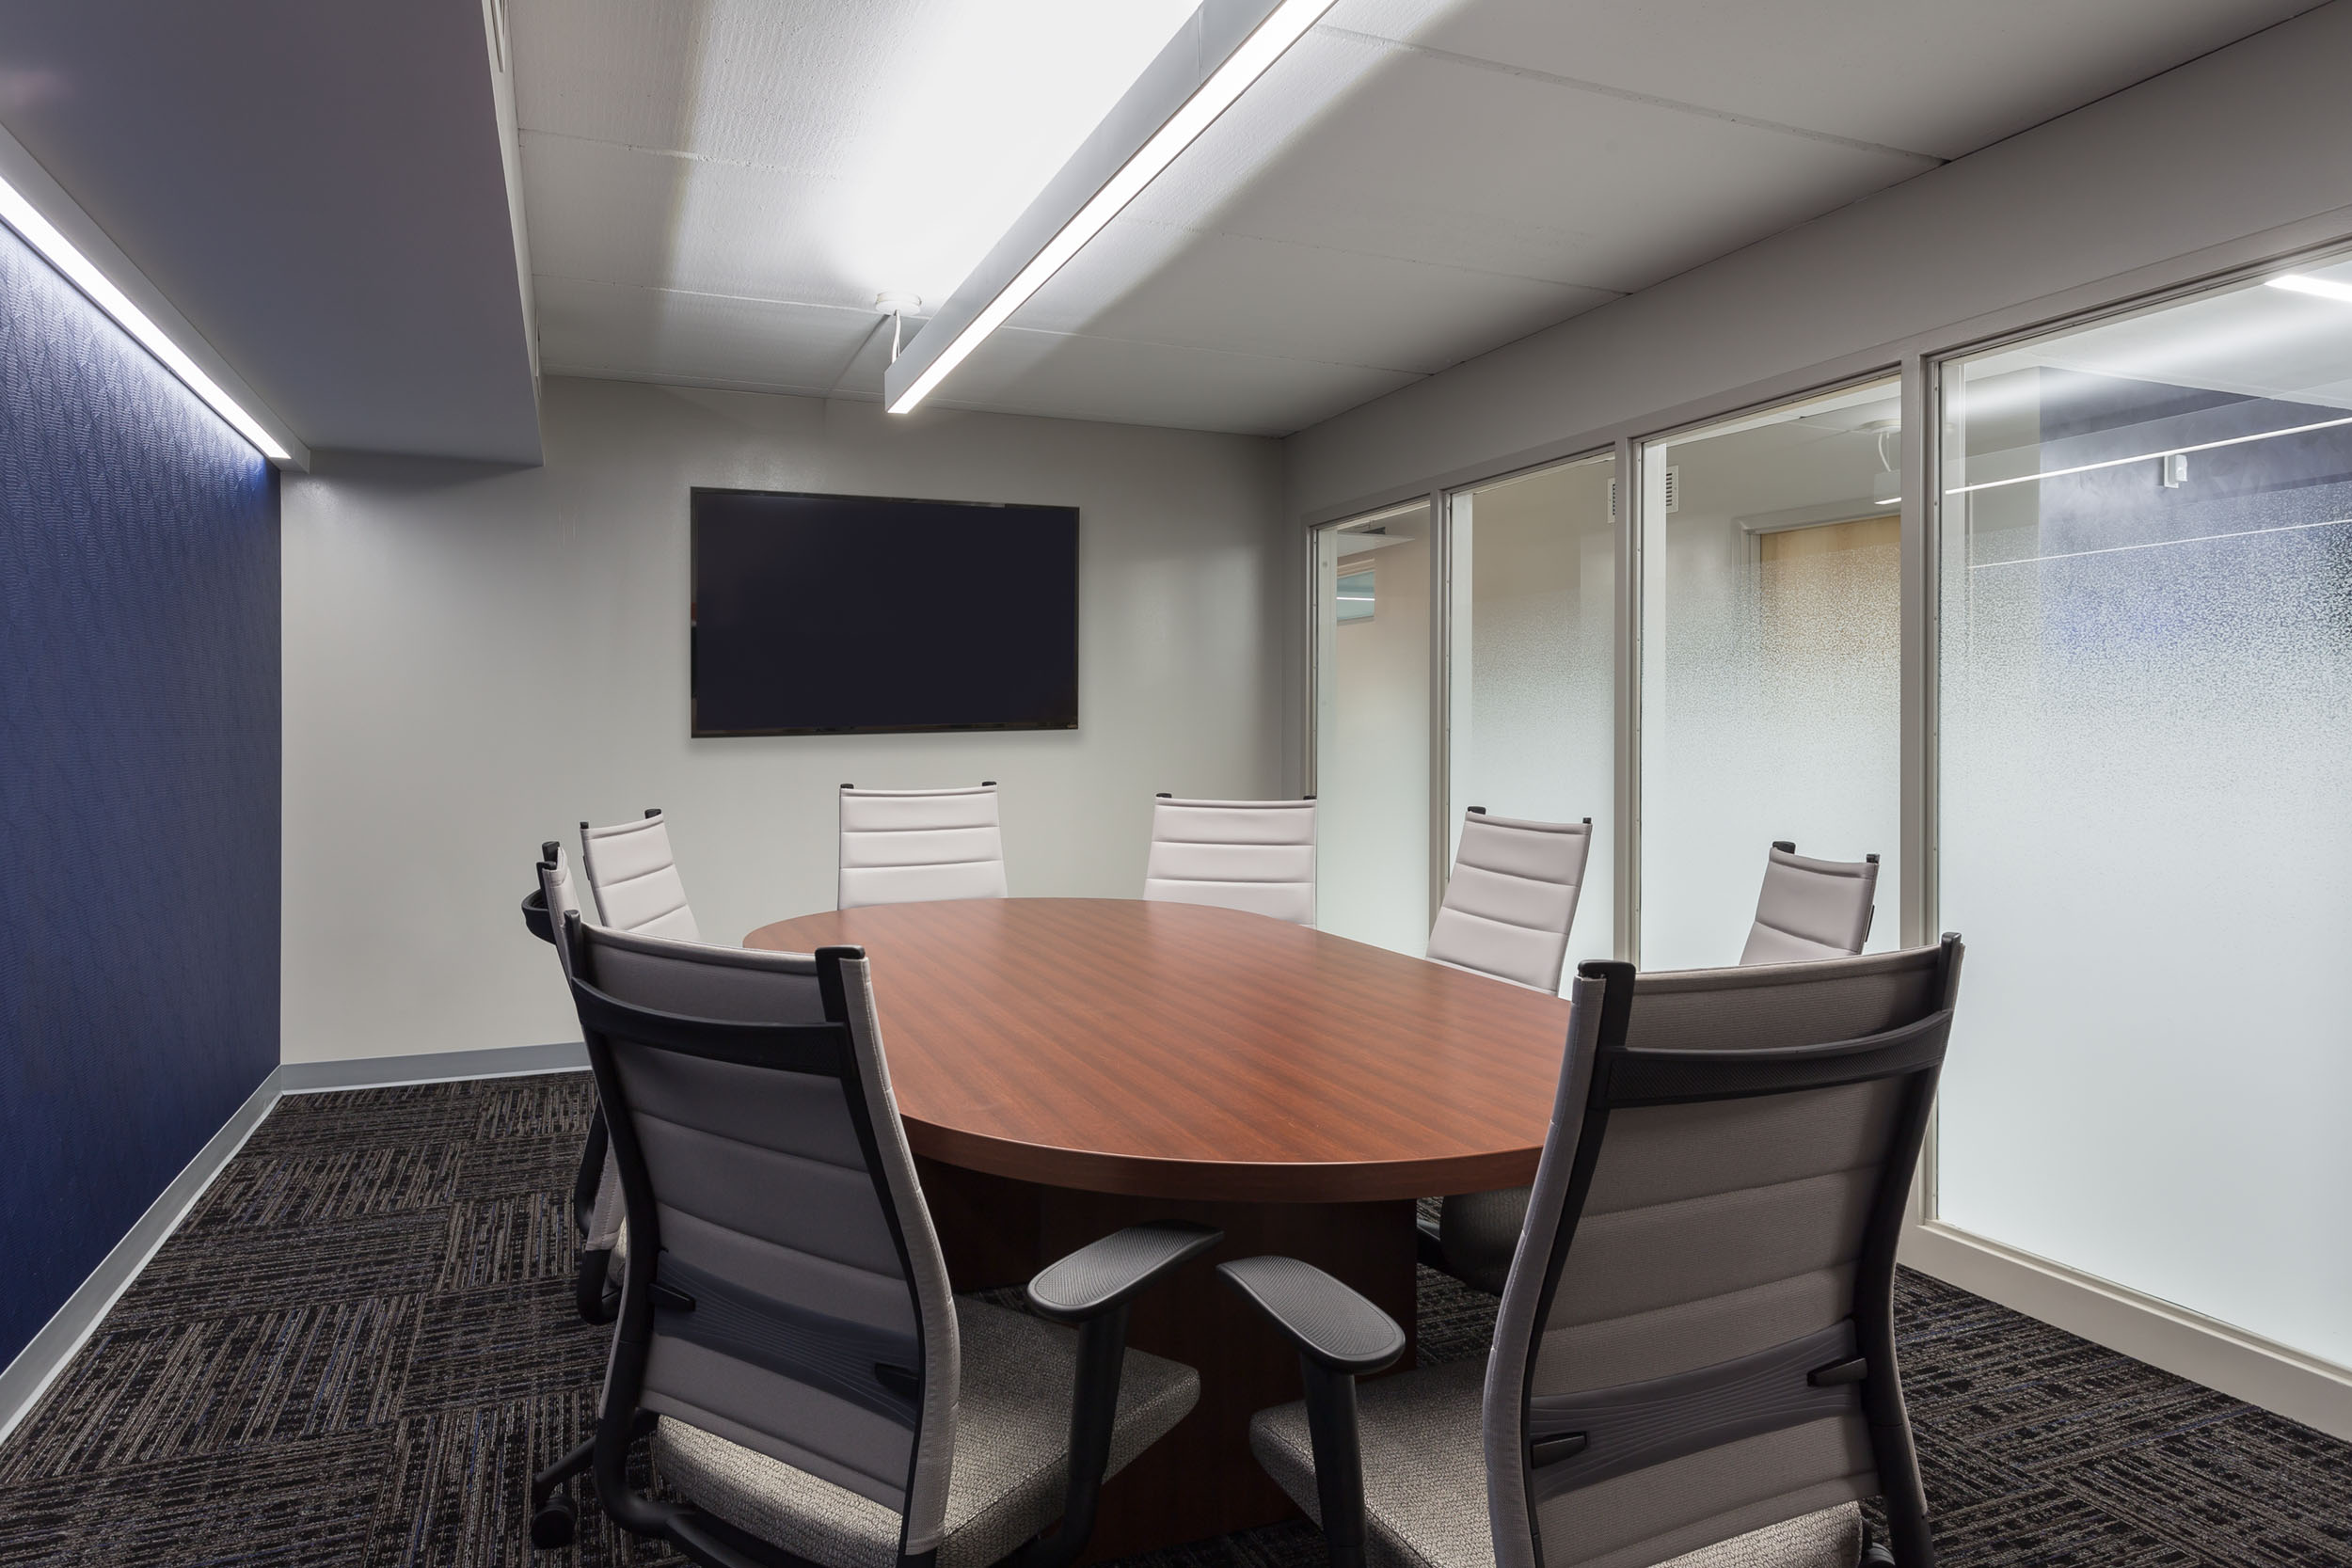 New Tempco Conference Room